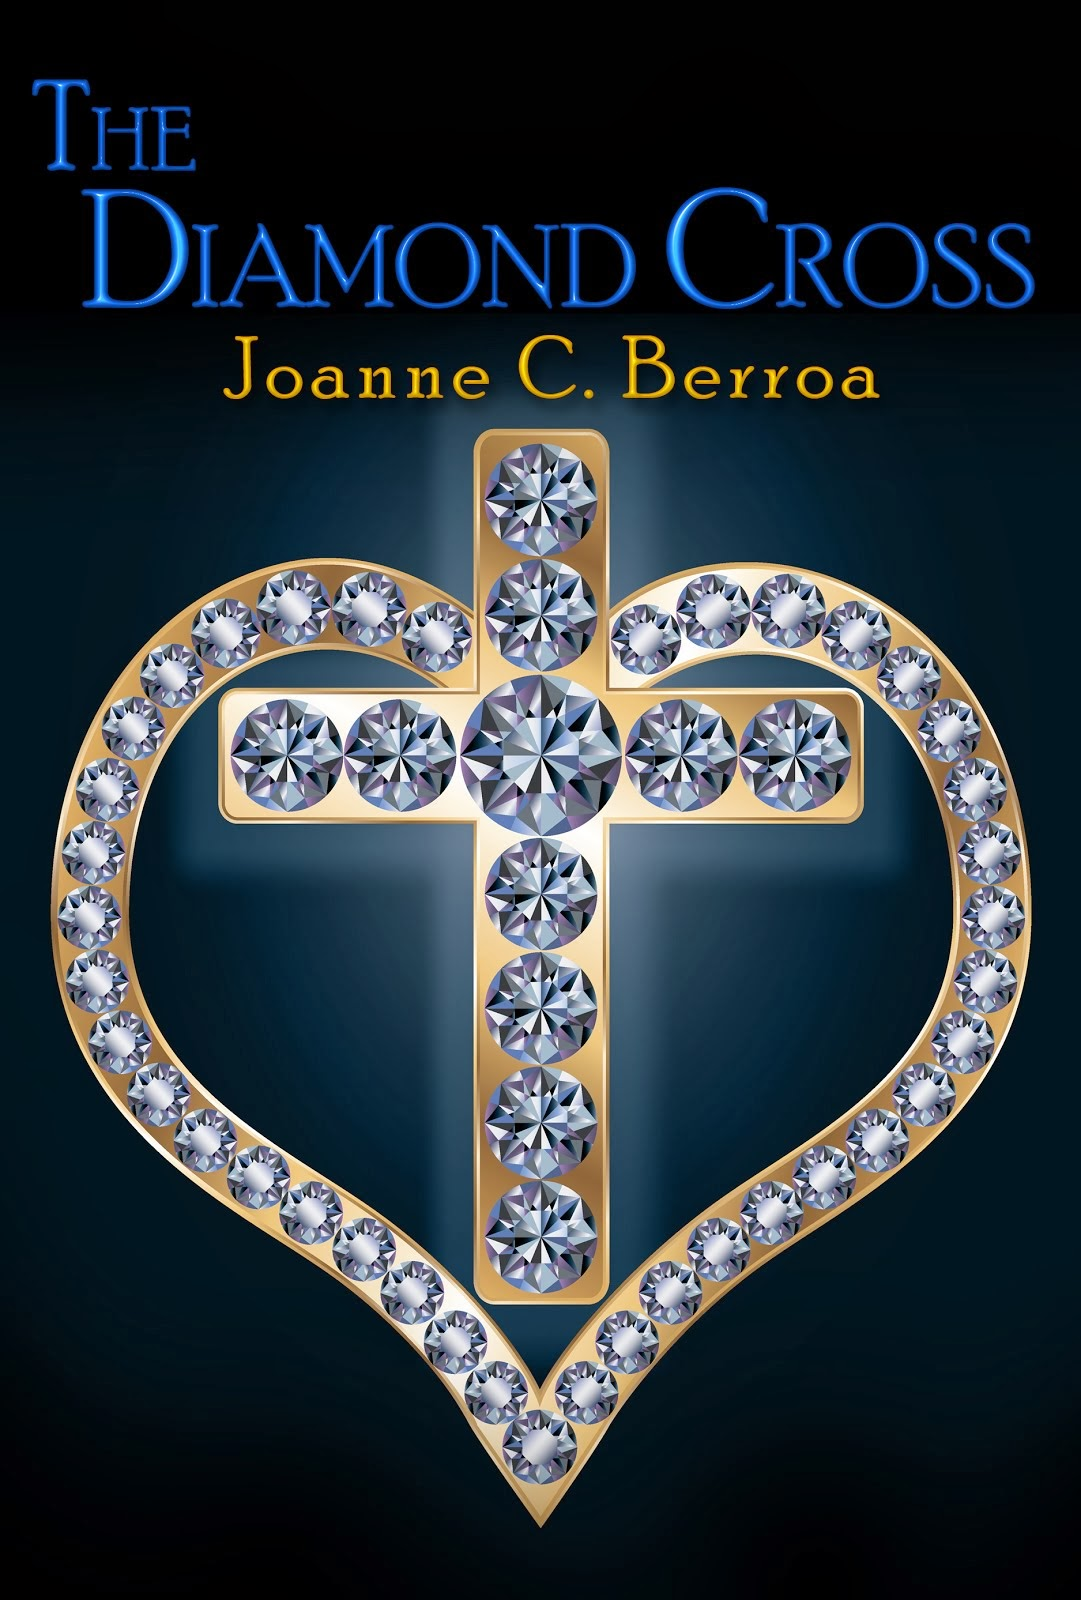 The Diamond Cross